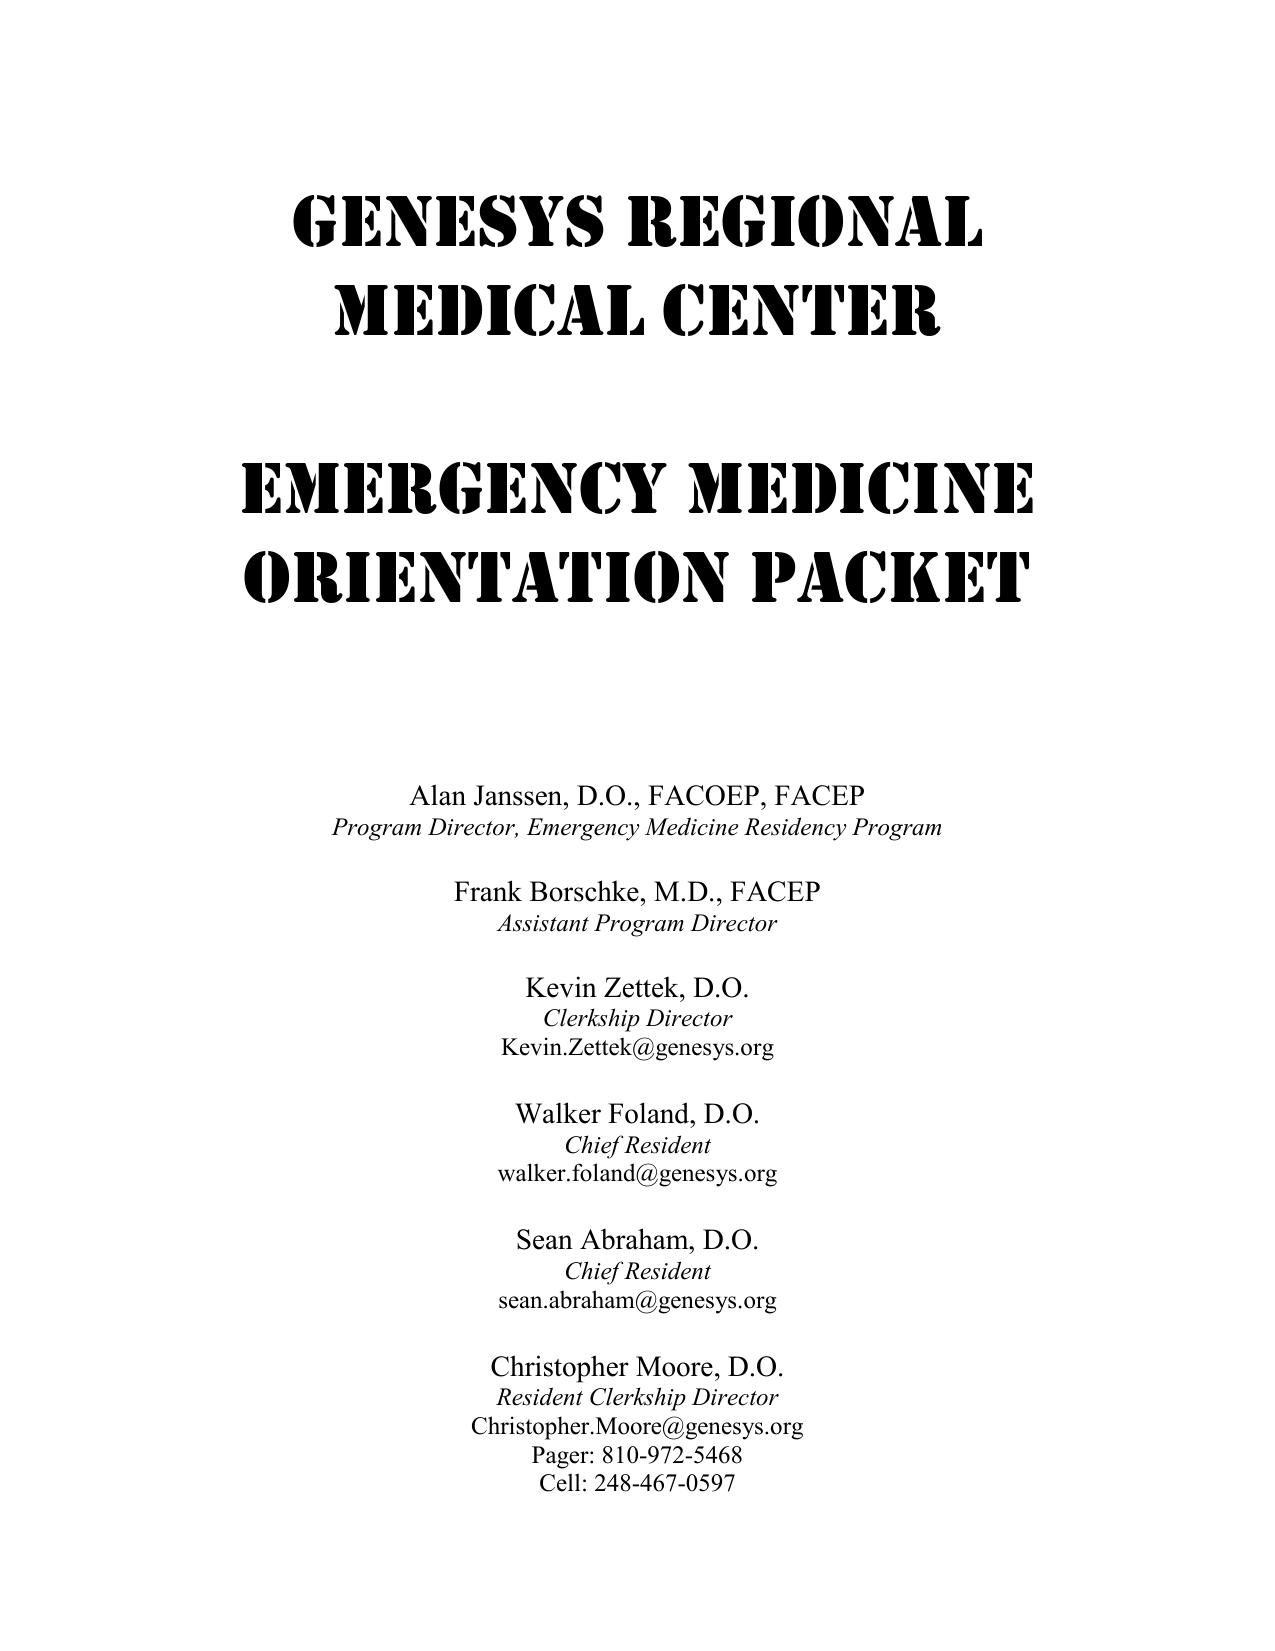 EMERGENCY MEDICINE - Genesys Regional Medical Center